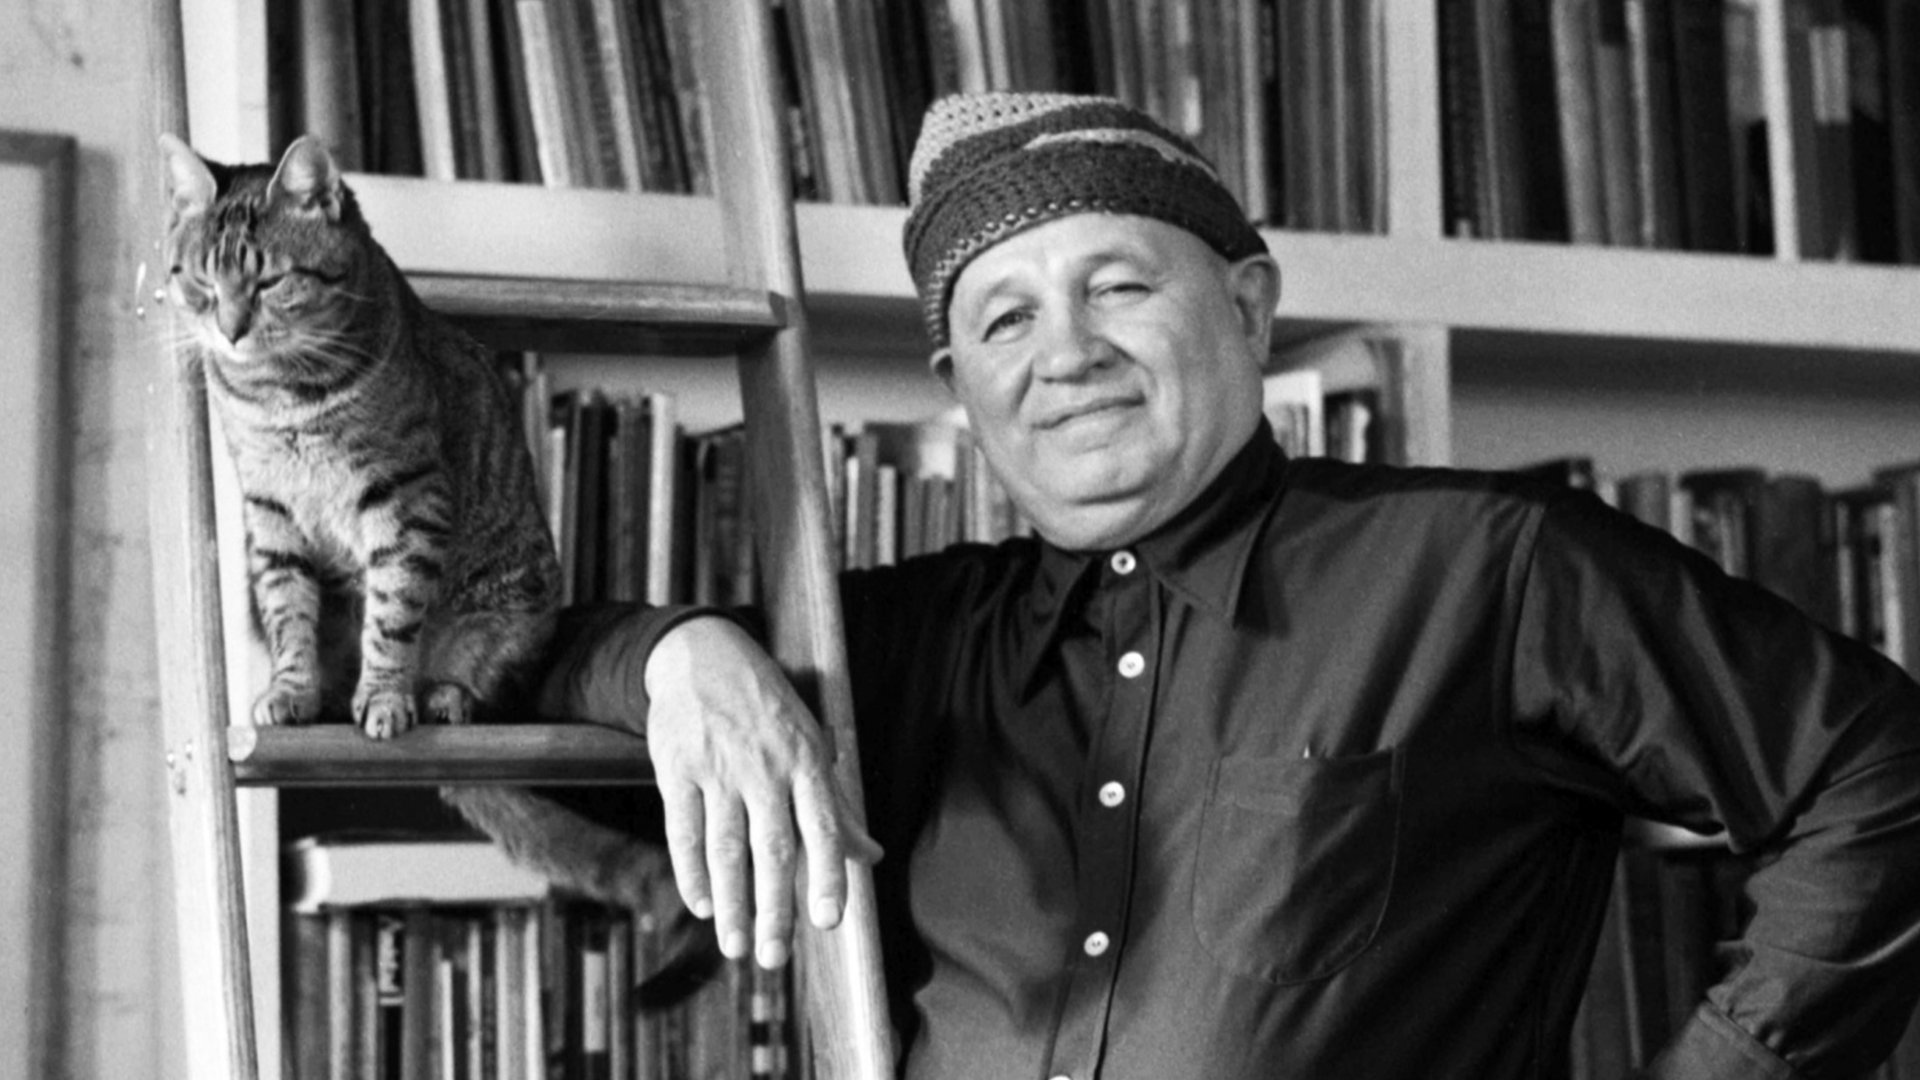 Watch: Romare Bearden's collages are celebrations of black life